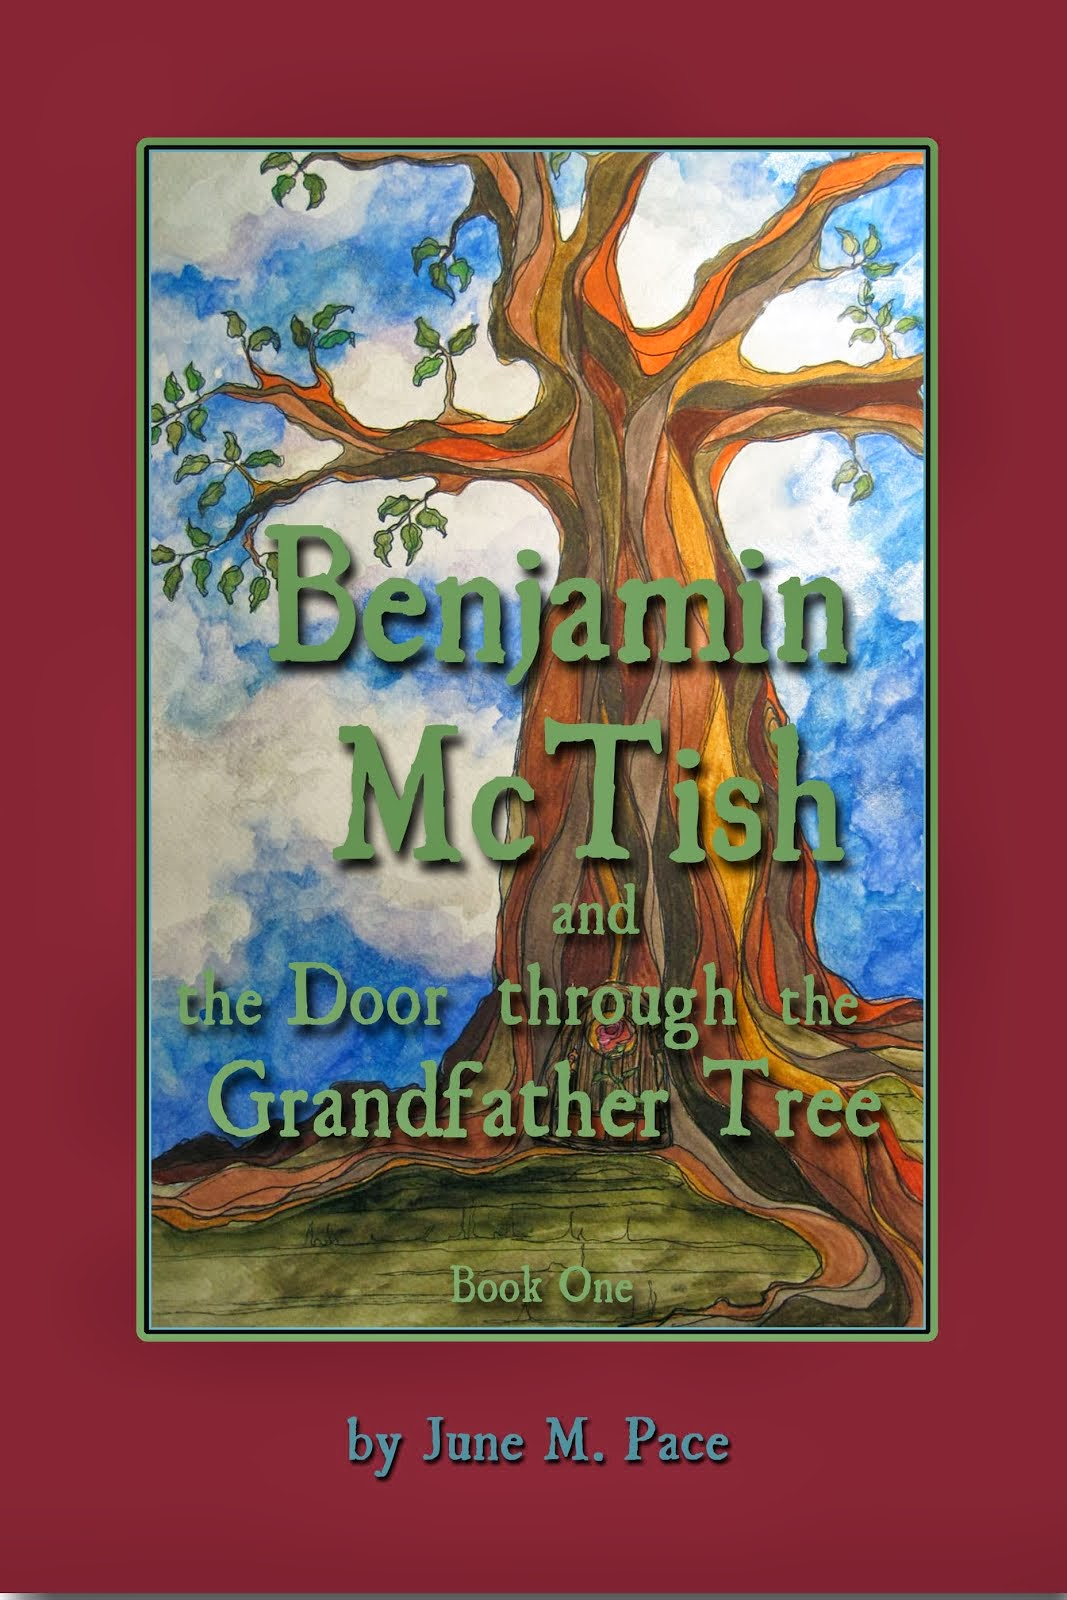 BOOK ONE, The Door Through The Grandfather Tree